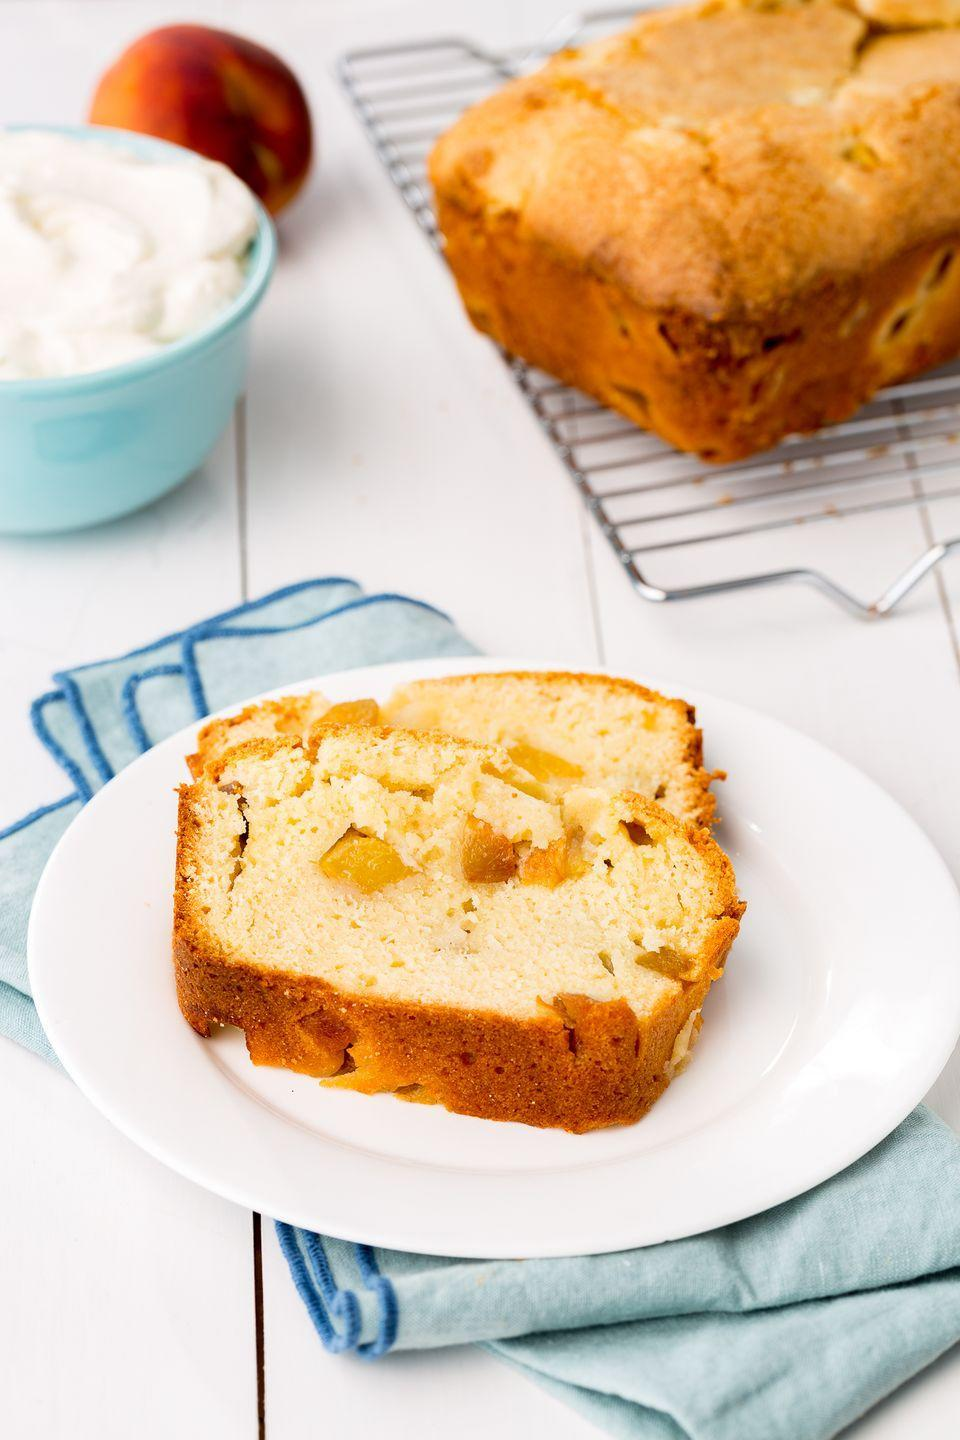 """<p>This must be what that 112 song was written about, right?</p><p>Get the recipe from <a href=""""https://www.delish.com/cooking/recipe-ideas/recipes/a46949/peaches-cream-pound-cake-recipe/"""" rel=""""nofollow noopener"""" target=""""_blank"""" data-ylk=""""slk:Delish"""" class=""""link rapid-noclick-resp"""">Delish</a>.</p>"""